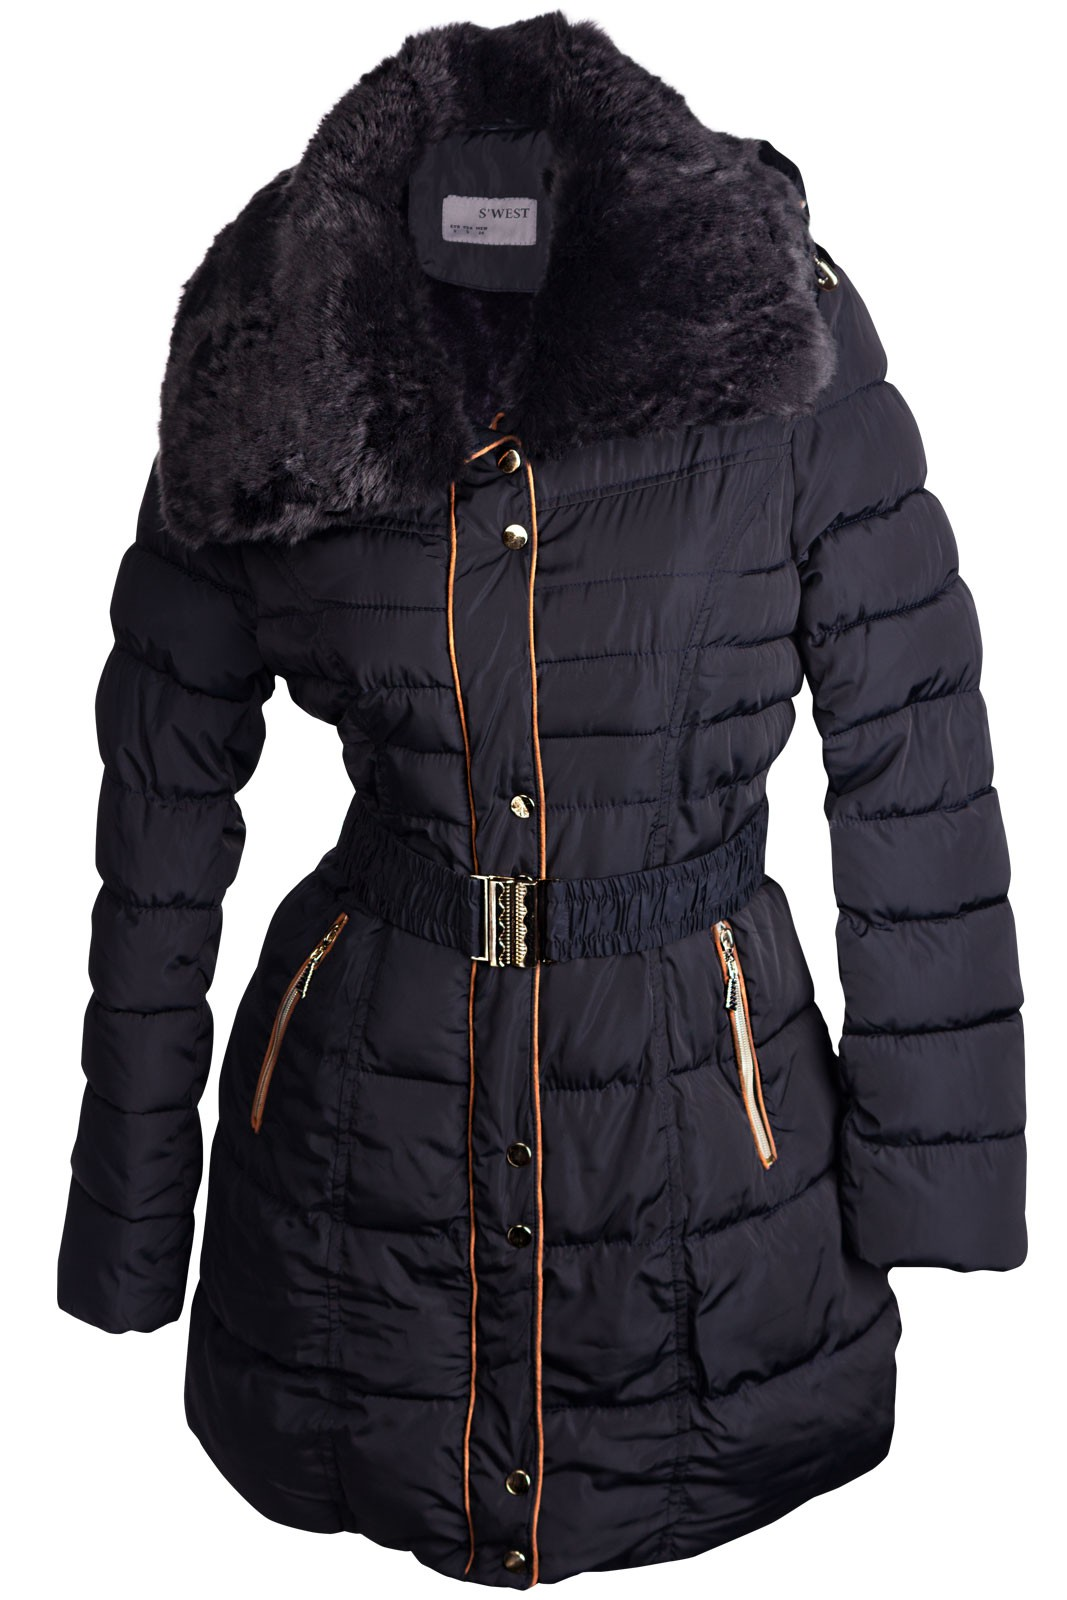 damen winter mantel stepp jacke parka lang fell kapuze. Black Bedroom Furniture Sets. Home Design Ideas